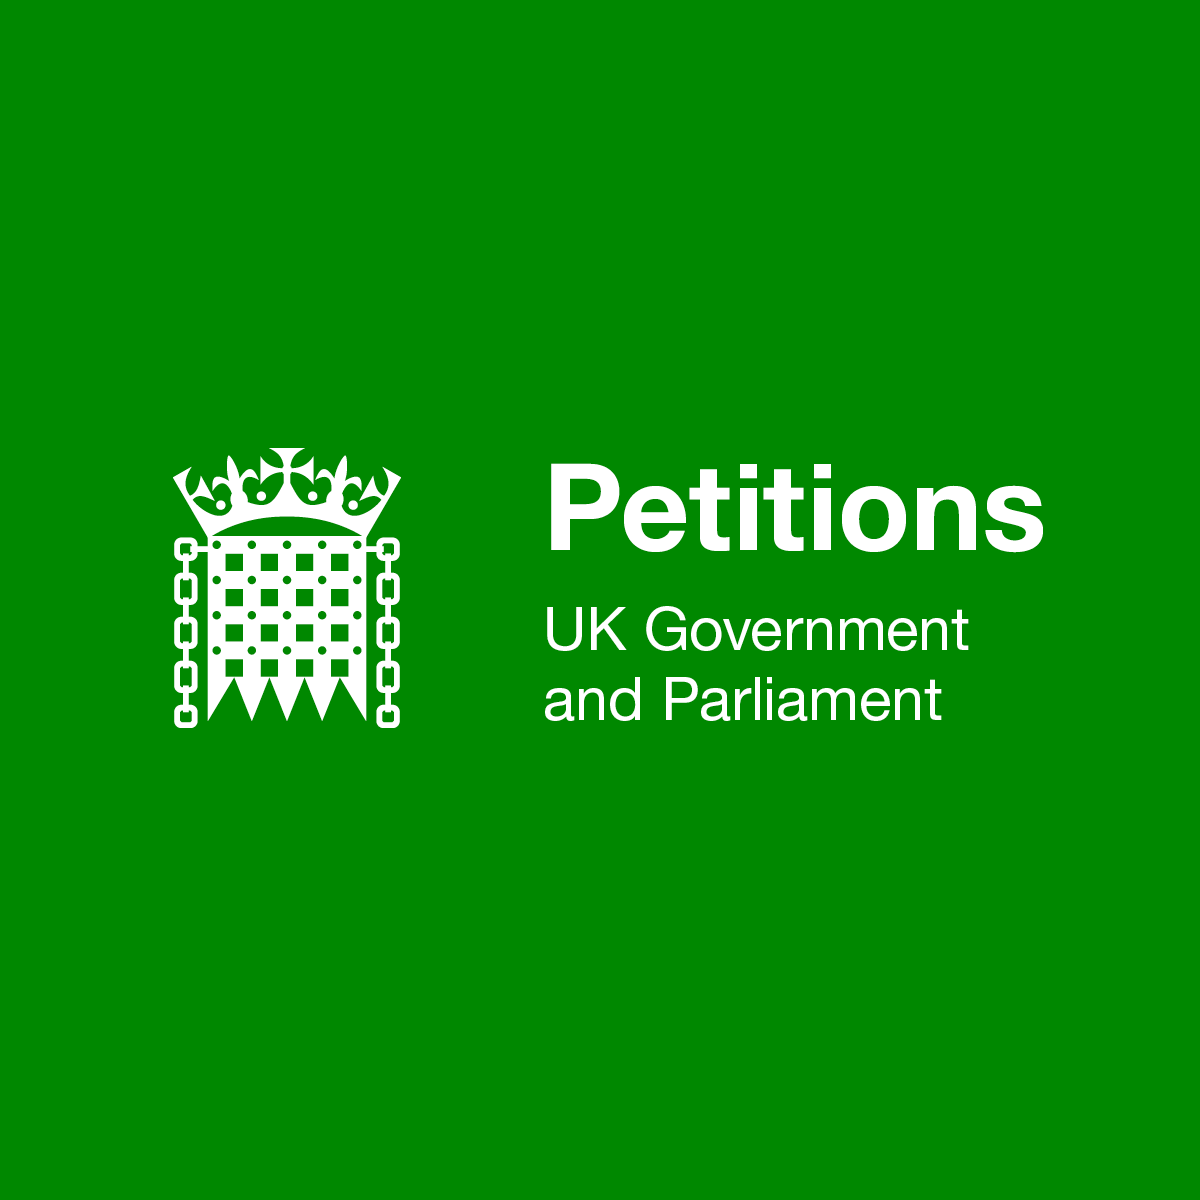 BAD UK PETITION - We have set up a petition to try and gain more funding for research into BAD.The more funding there is, the more research is done and this will improve medication shortages in the future.Please help us change the future for BAD patients by signing our petition.